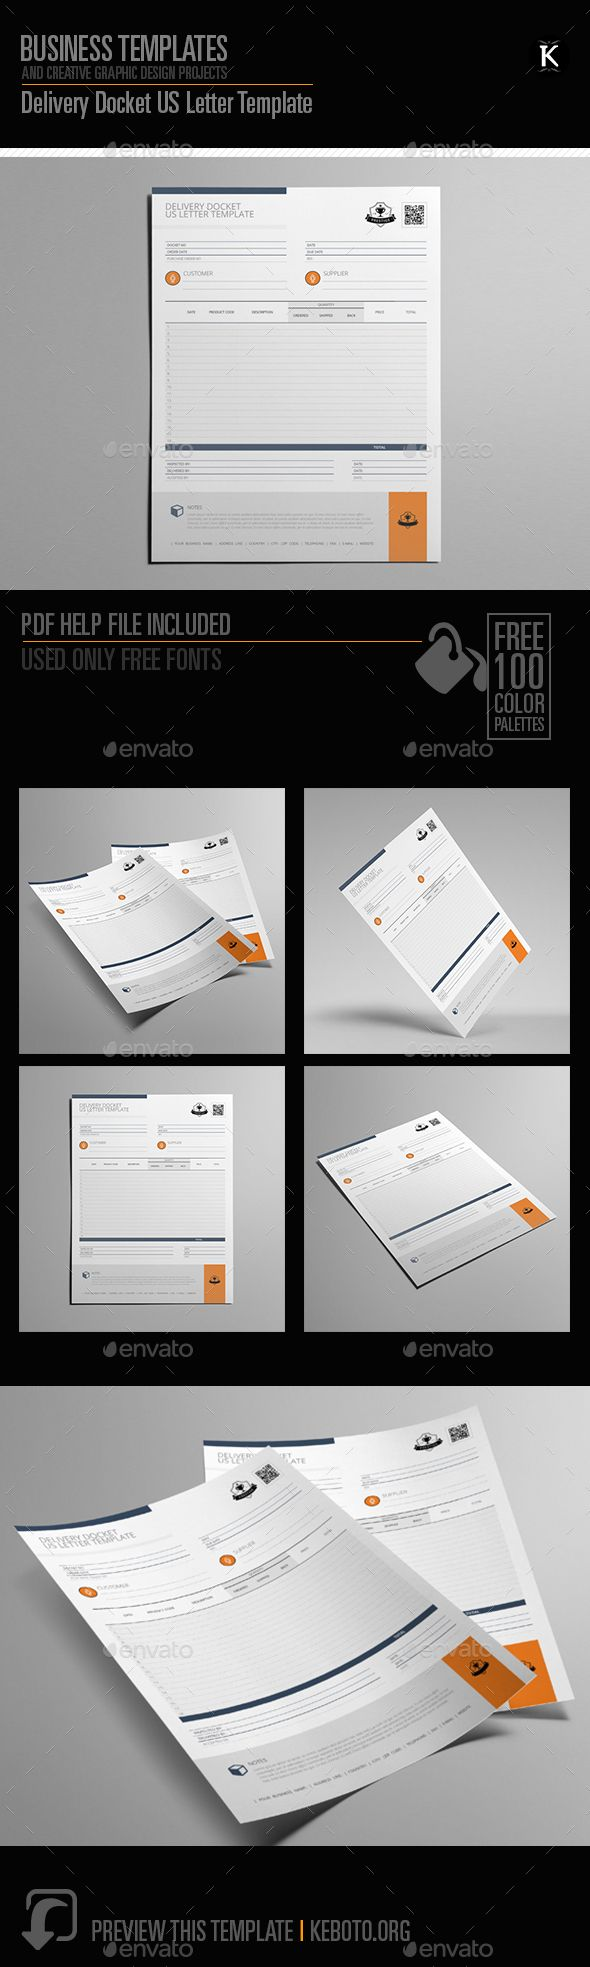 Delivery #Docket US #Letter Template - Miscellaneous #Print Templates Download here:  https://graphicriver.net/item/delivery-docket-us-letter-template/20294103?ref=alena994